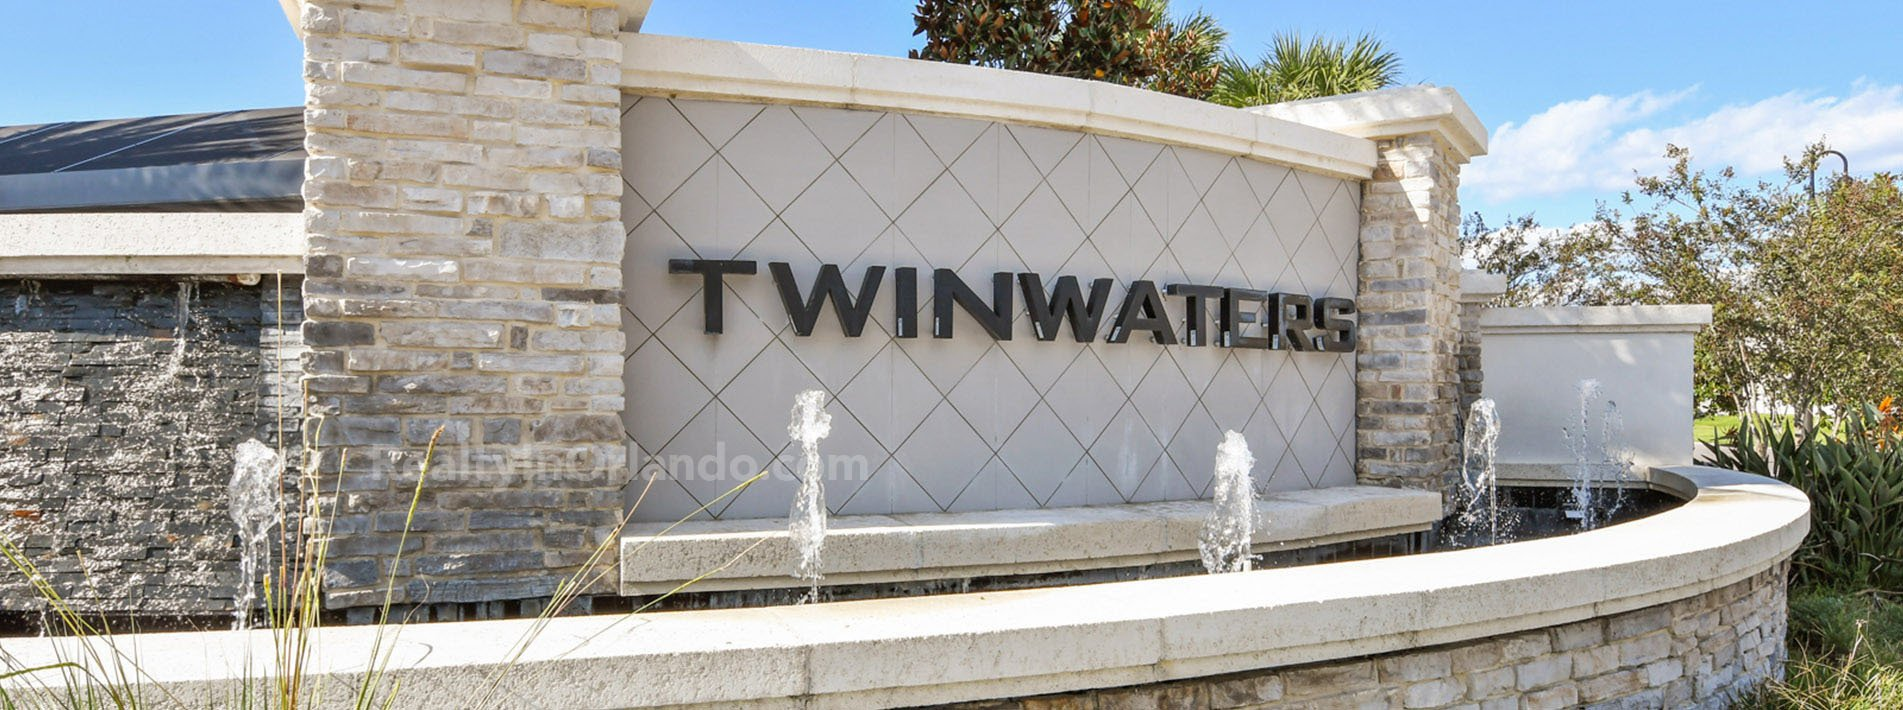 Twinwaters Winter Garden Real Estate